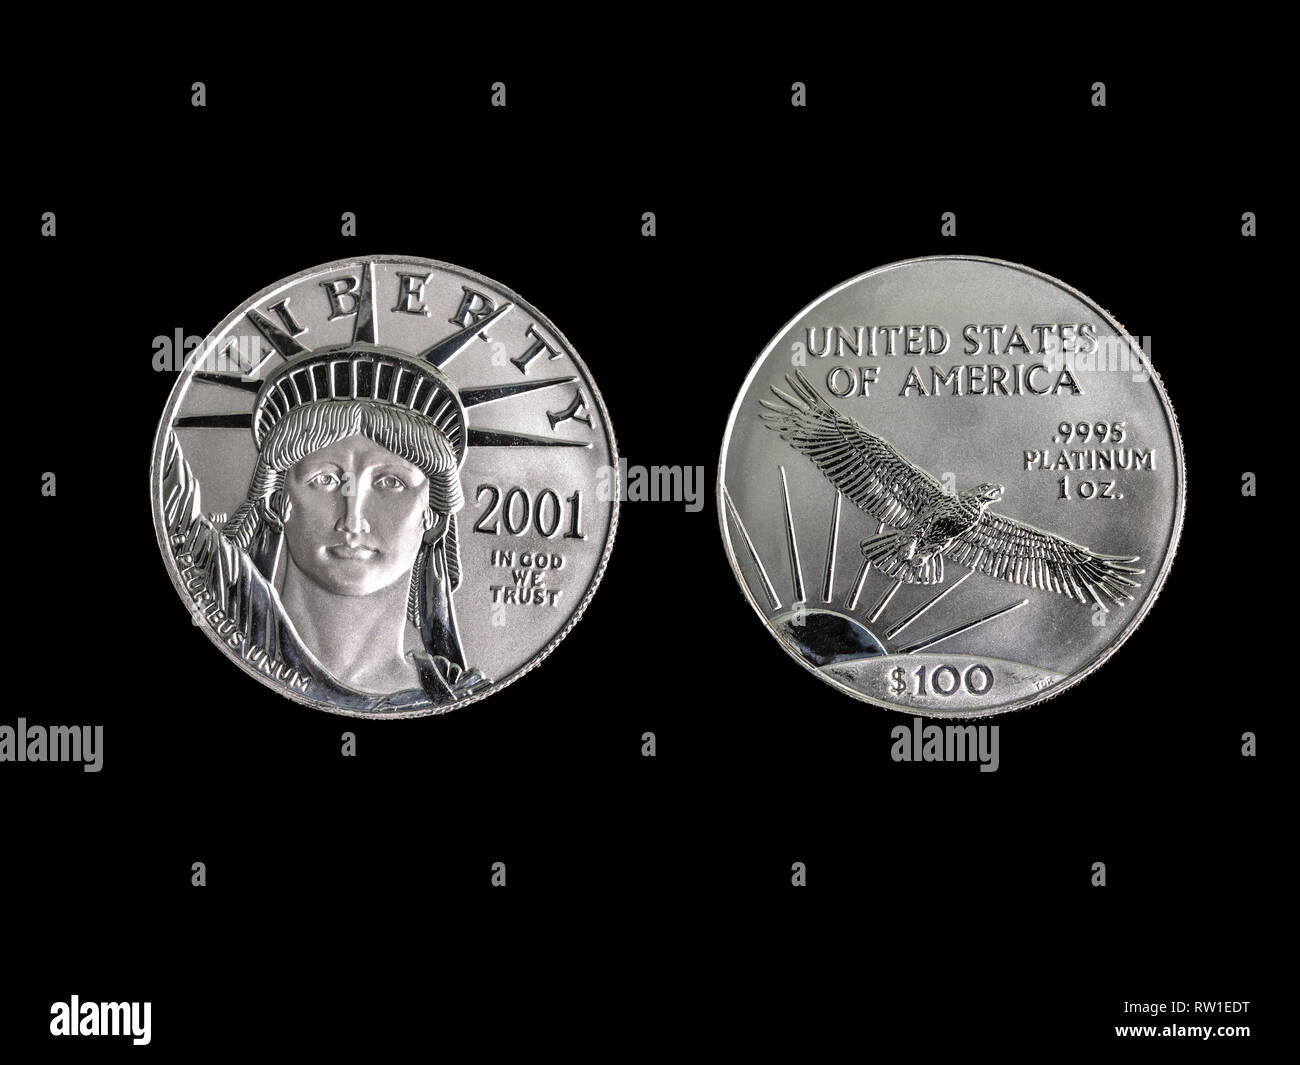 100 dollar 1oz Platinum coin macro close up photograph on a black background. - Stock Image